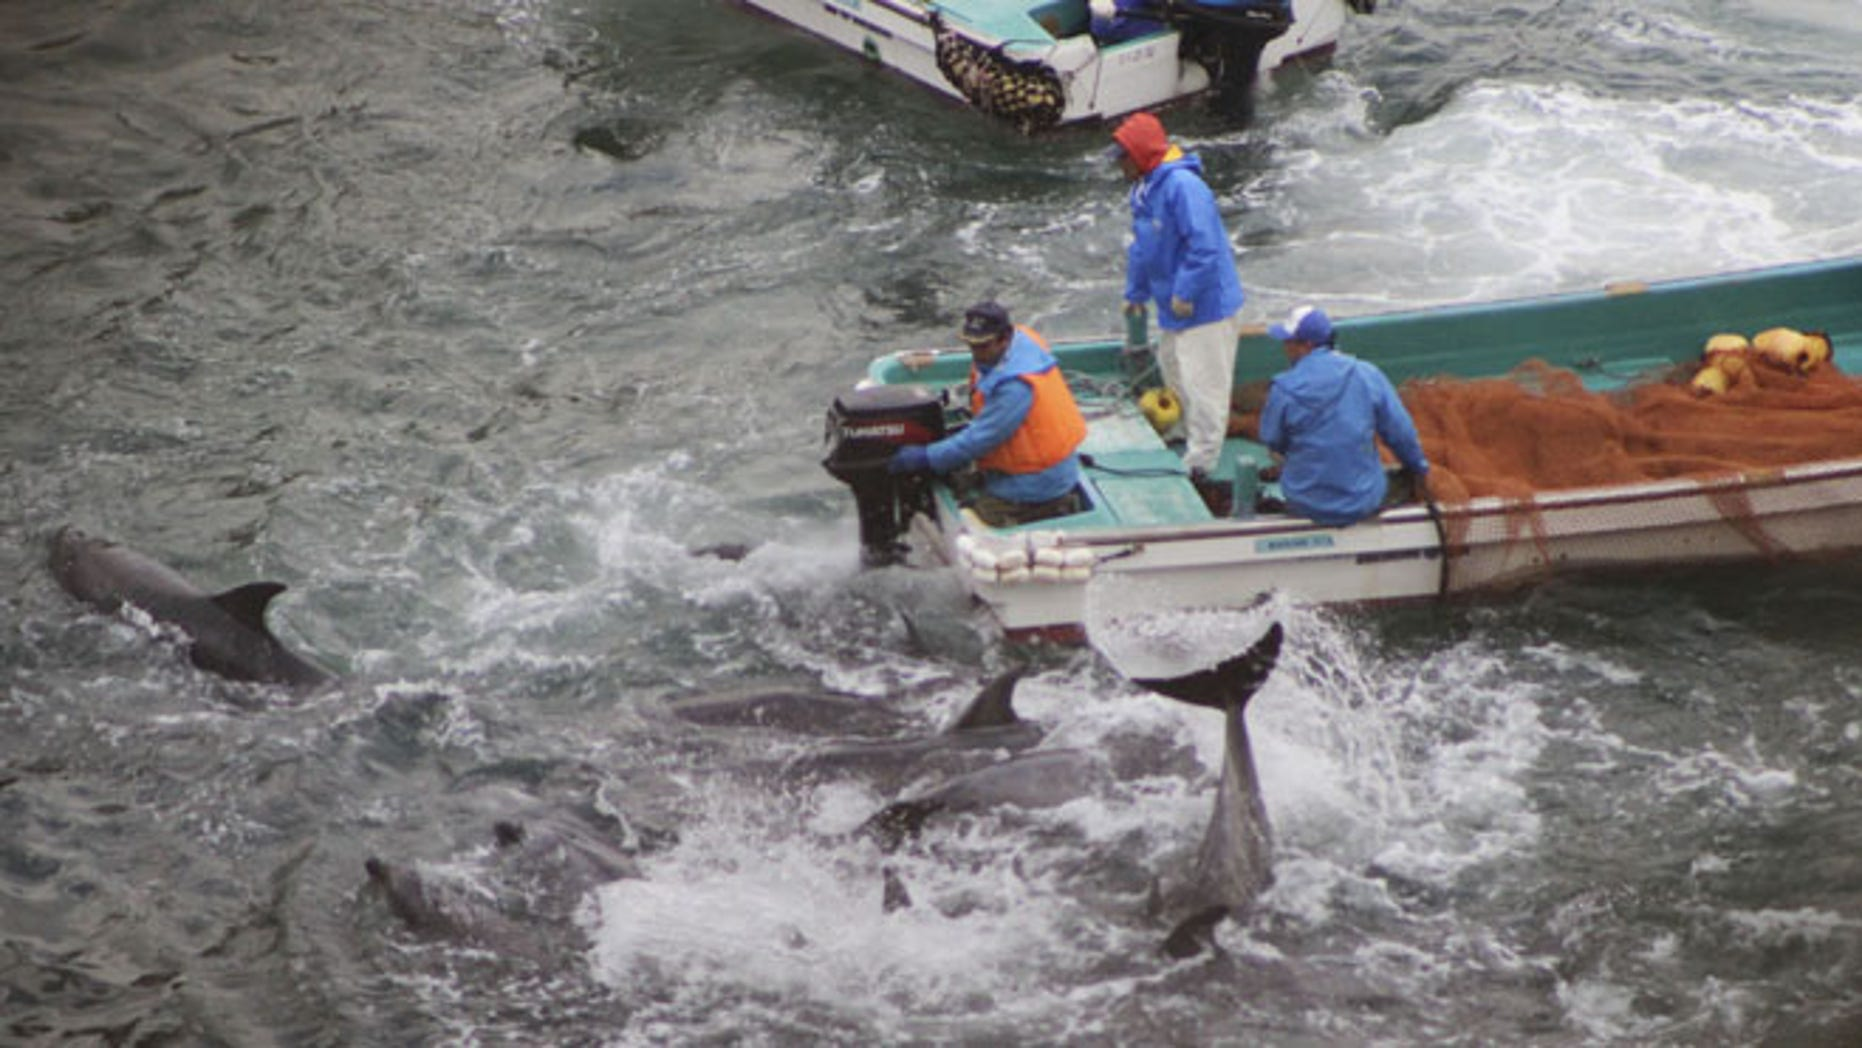 Jan. 20, 2014: In this photo provided by Sea Shepherd Conservation Society Tuesday, Jan. 21, 2014, fishermen on boats drive bottlenose dolphins away during the selection process in Taiji, western Japan.